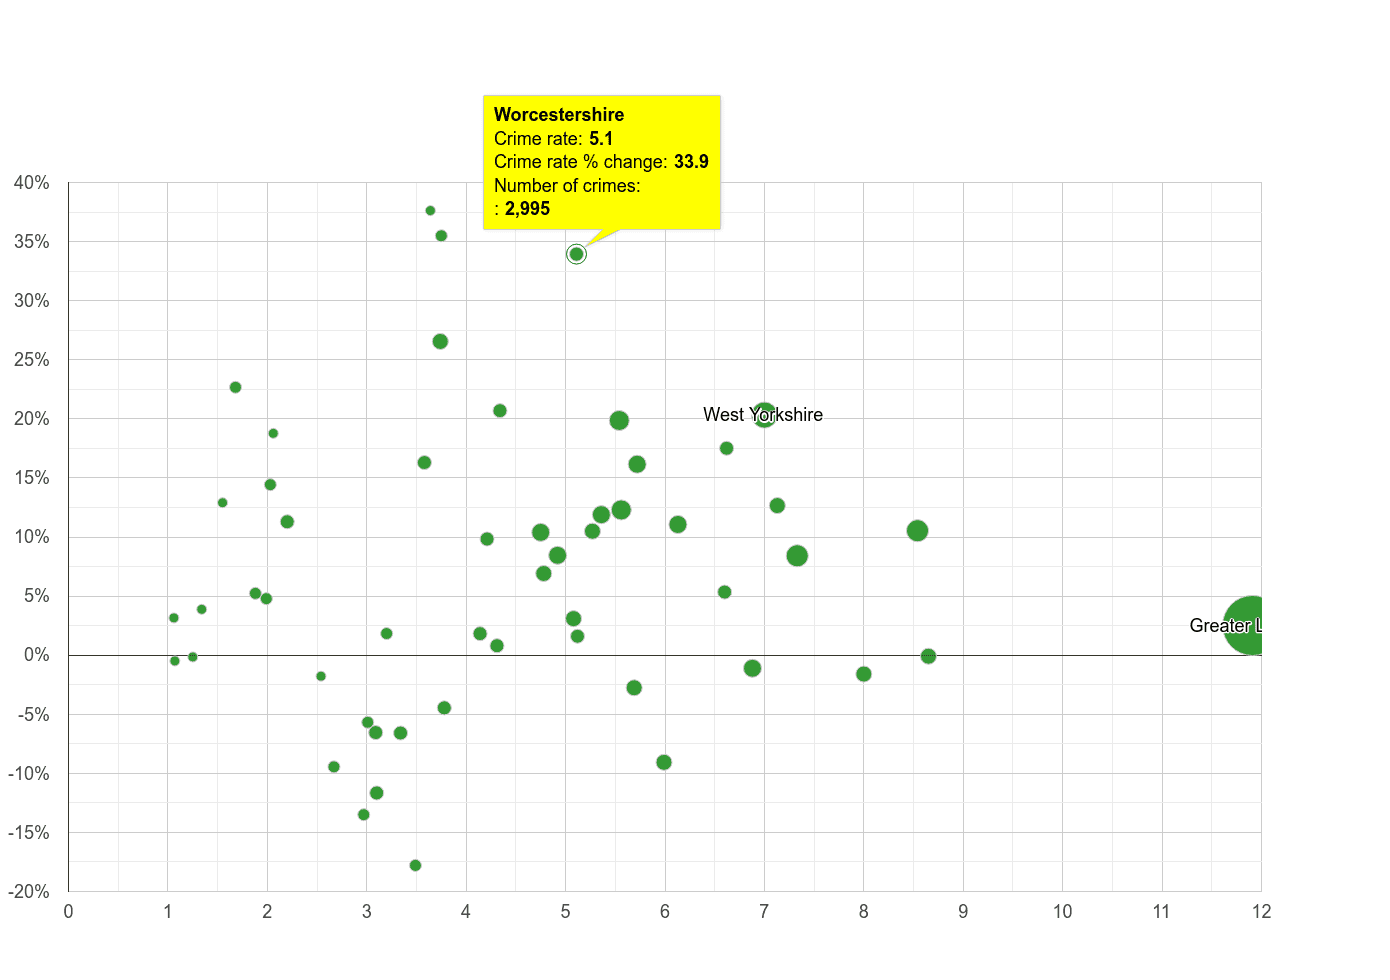 Worcestershire vehicle crime rate compared to other counties